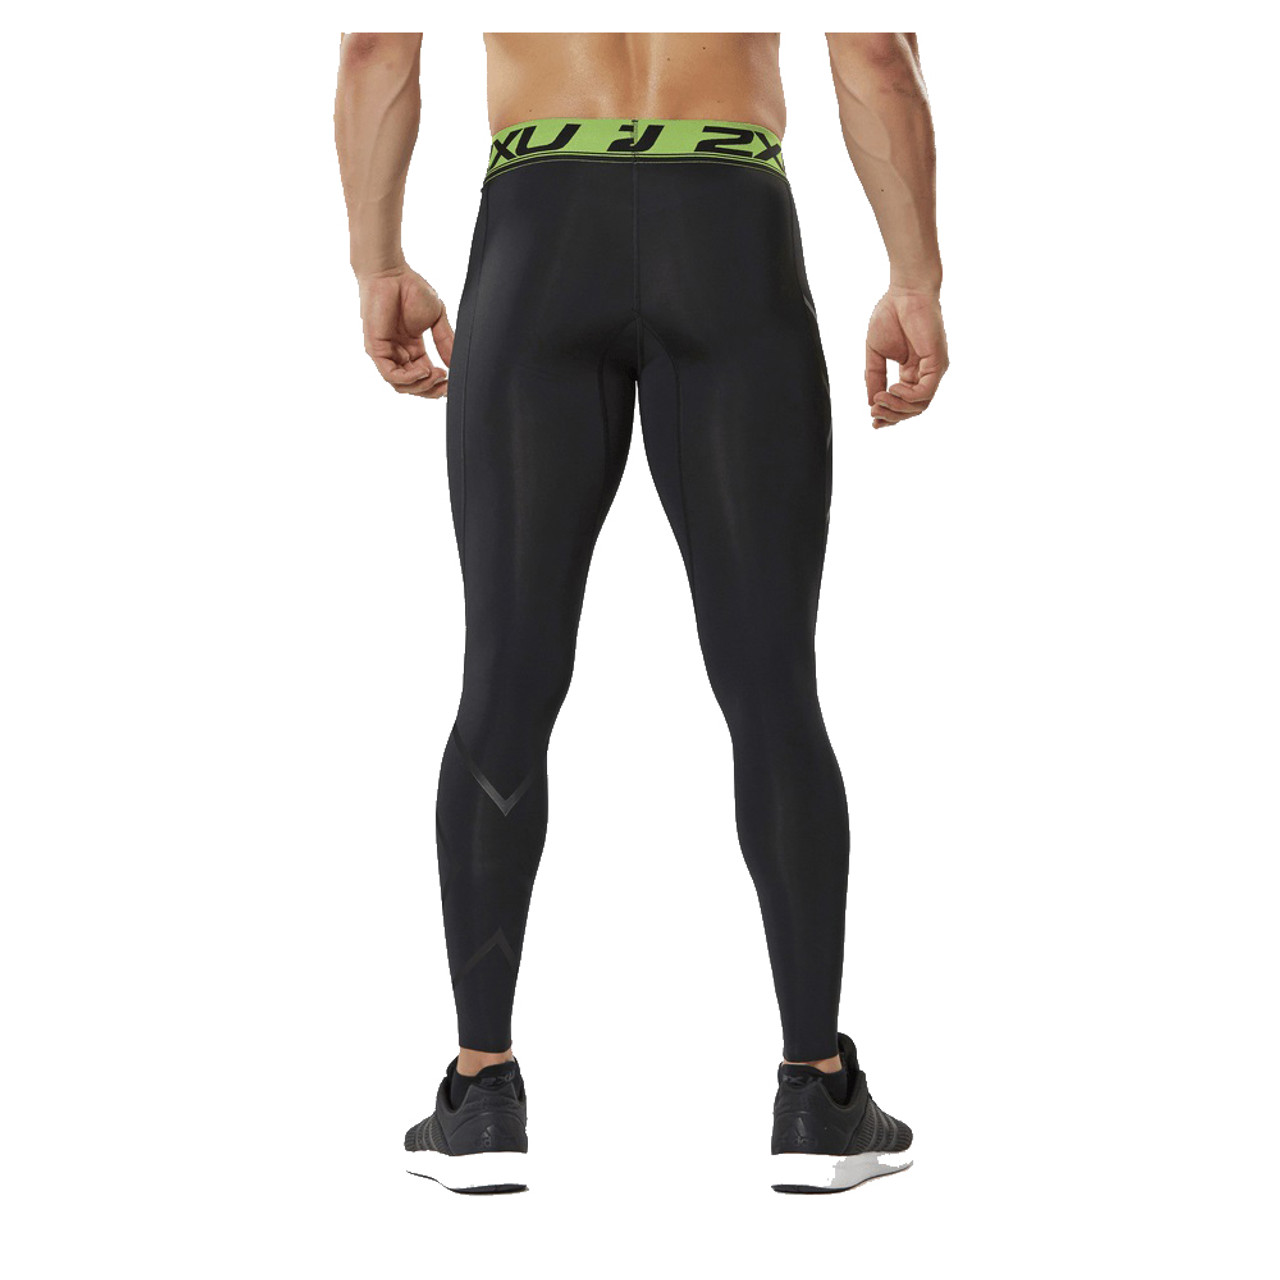 9f772122e2 ... 2XU Men's Refresh Recovery Compression Tights - Back